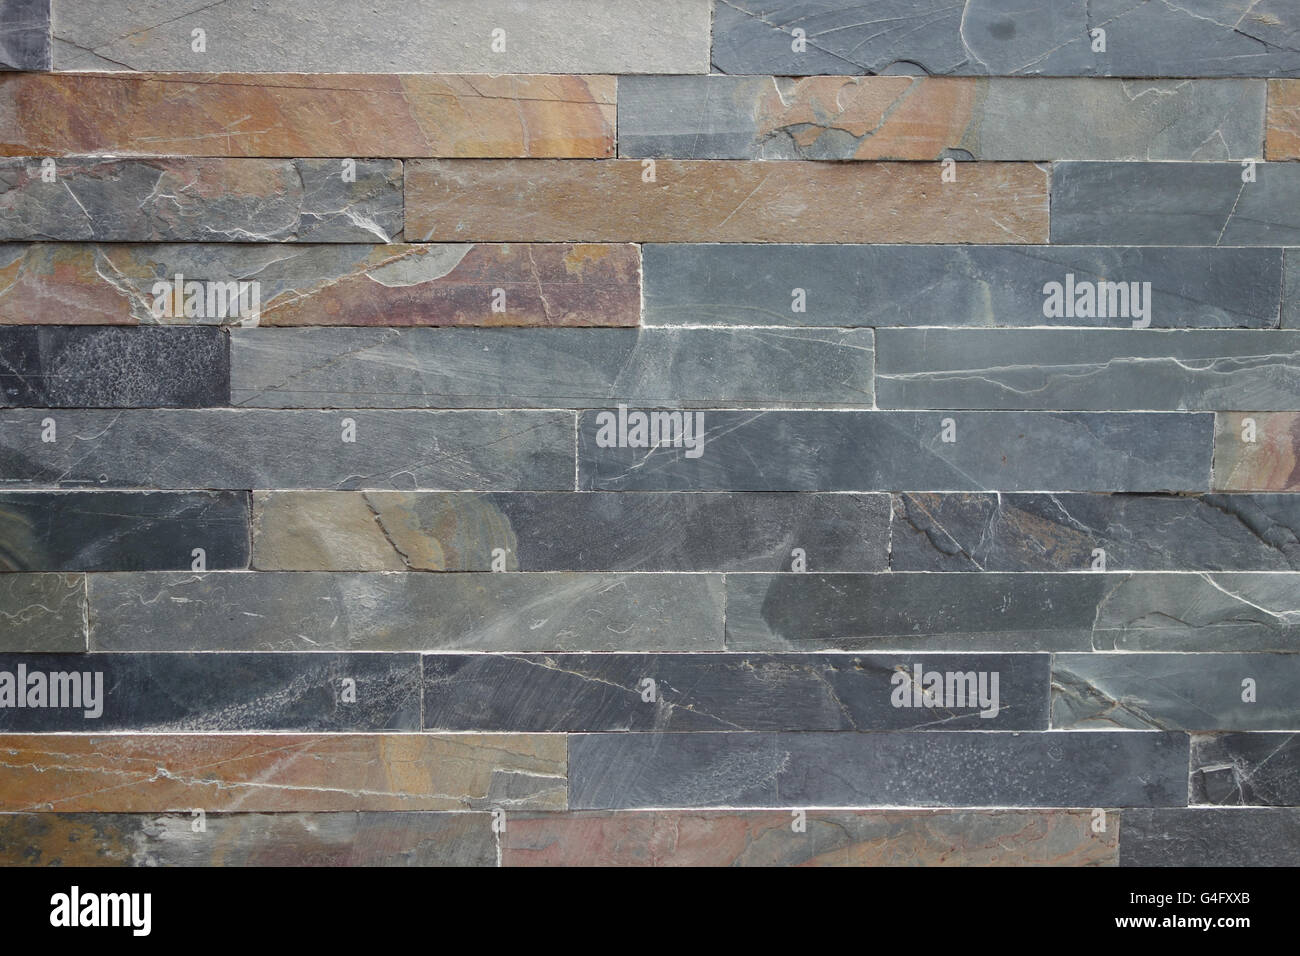 Roughly textured stone cladding tiled wall in grey and ochre colours background Stock Photo